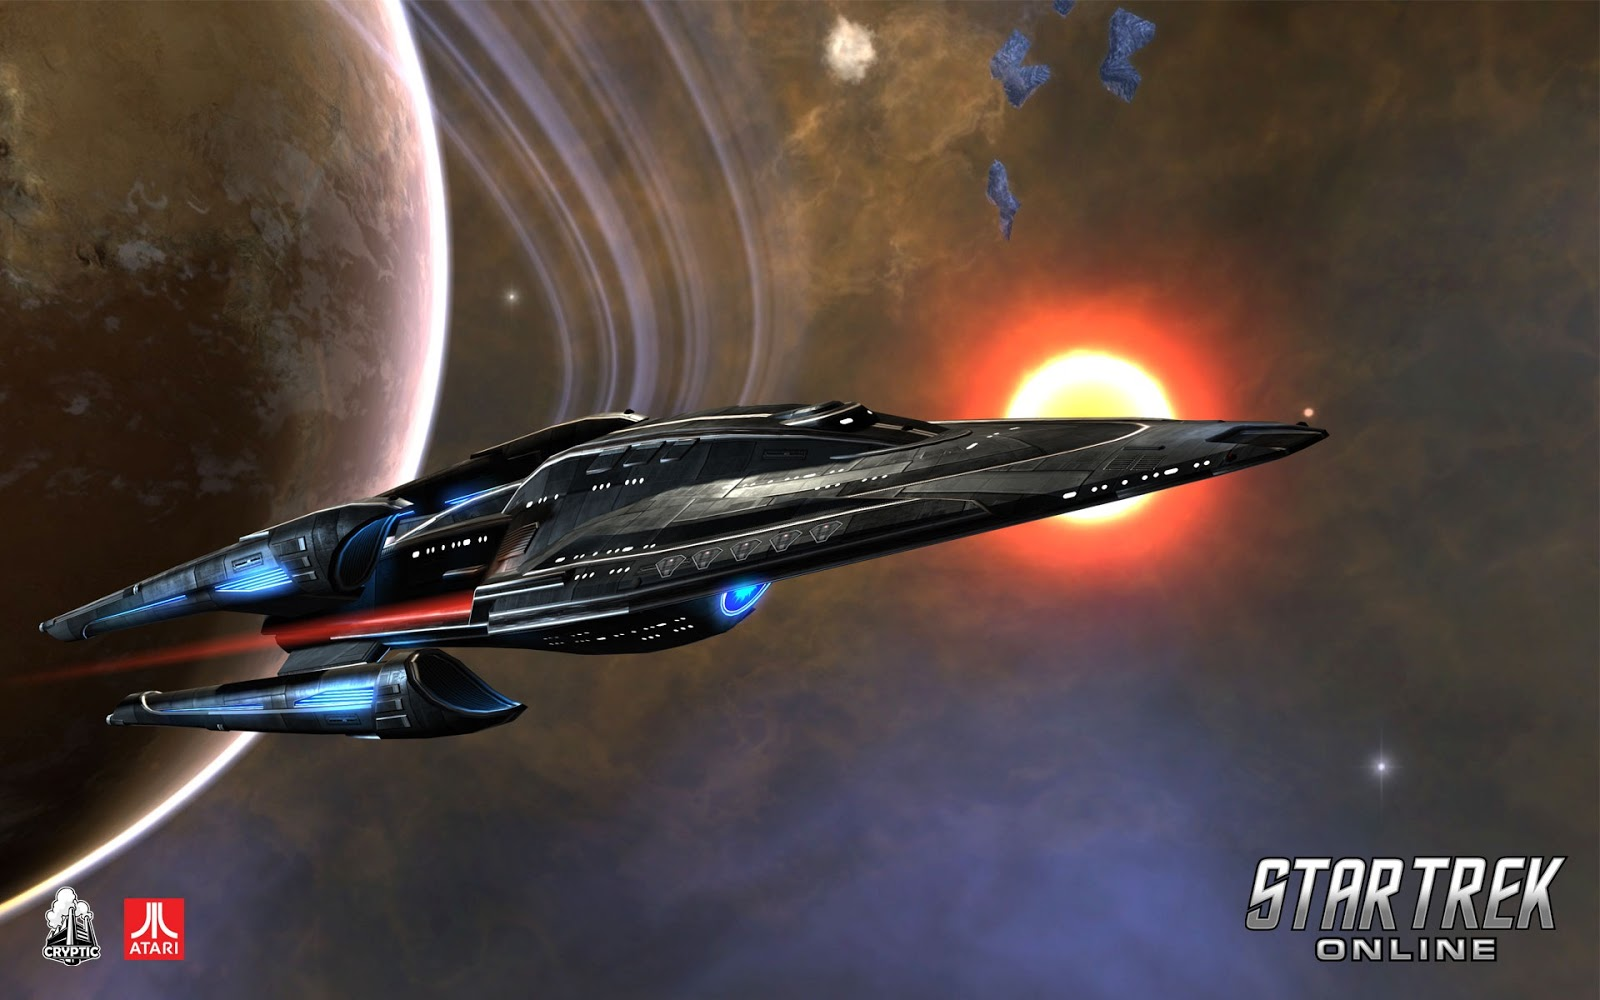 Star Trek Online Gaming Wallpapers and Theme for Windows 7 and Windows 1600x1000